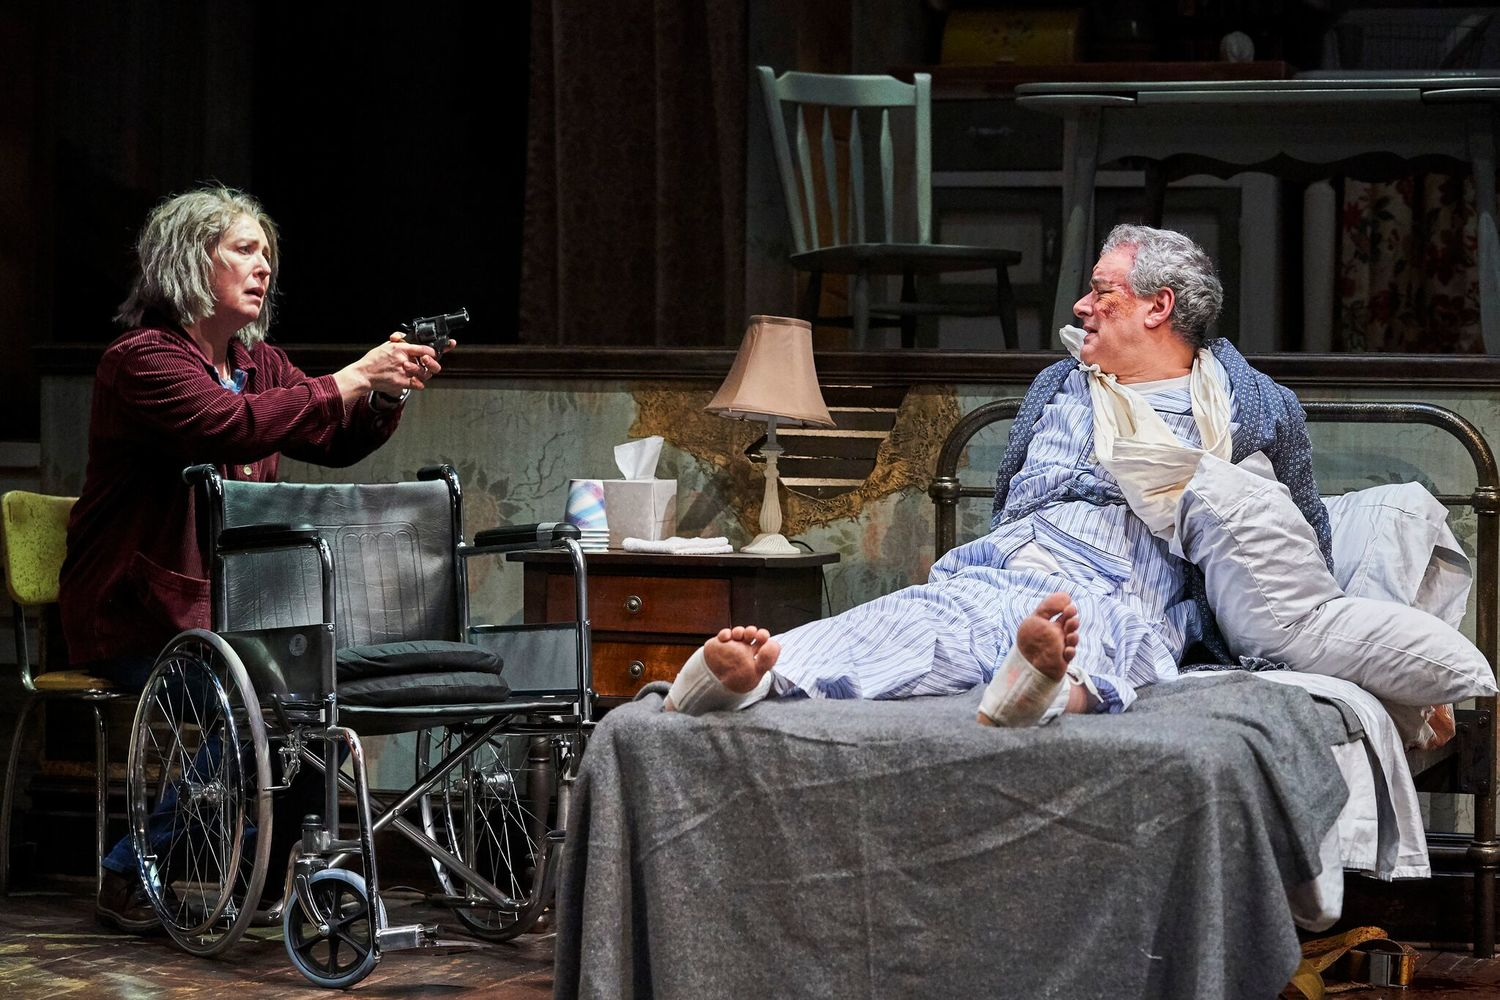 BWW Review: MISERY at Great Lakes Theater